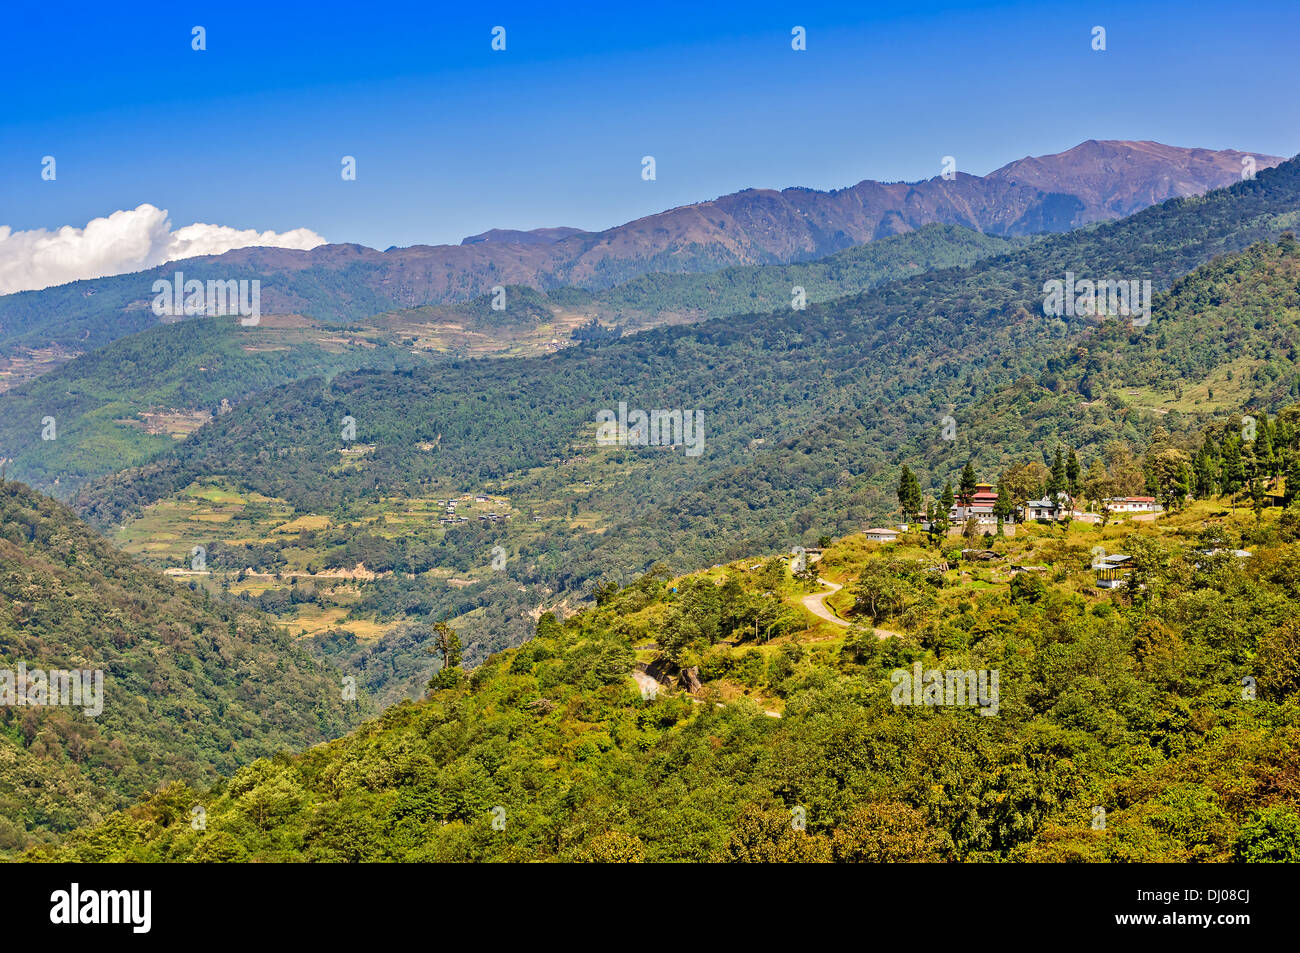 Landscape of Bhutan with mountains and forests - Stock Image